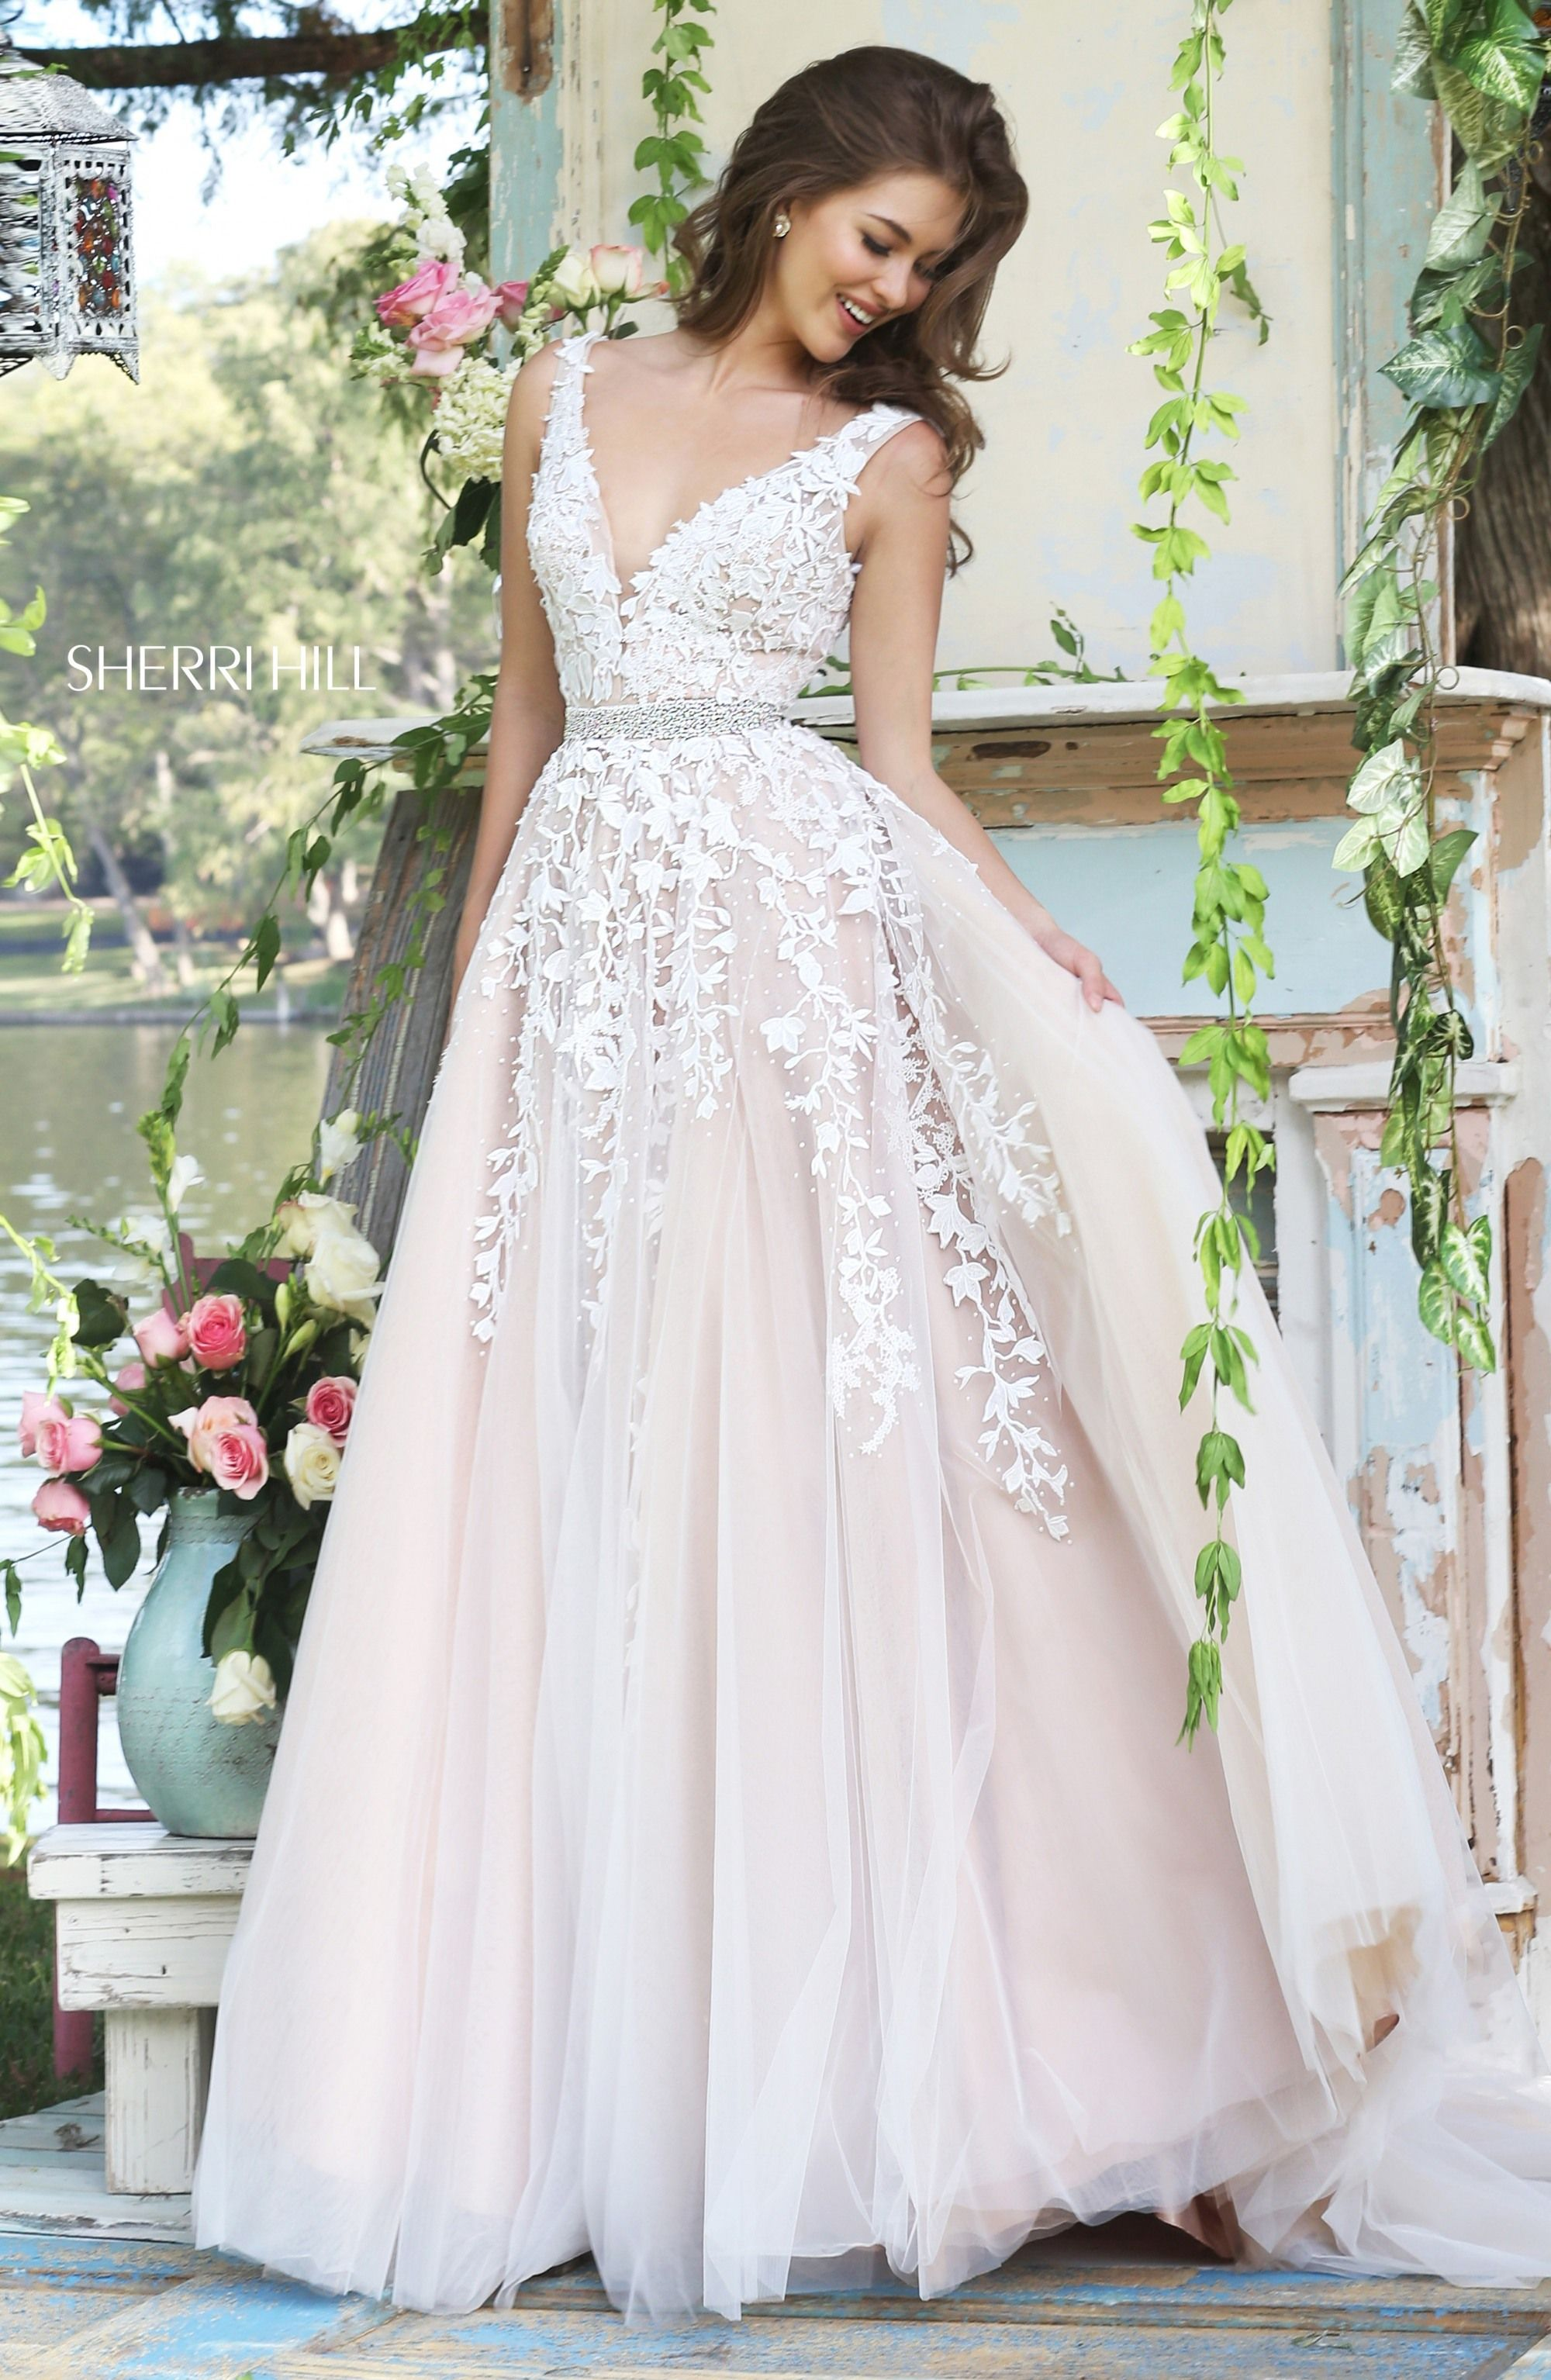 This sherri hill prom dress features a beautiful aline